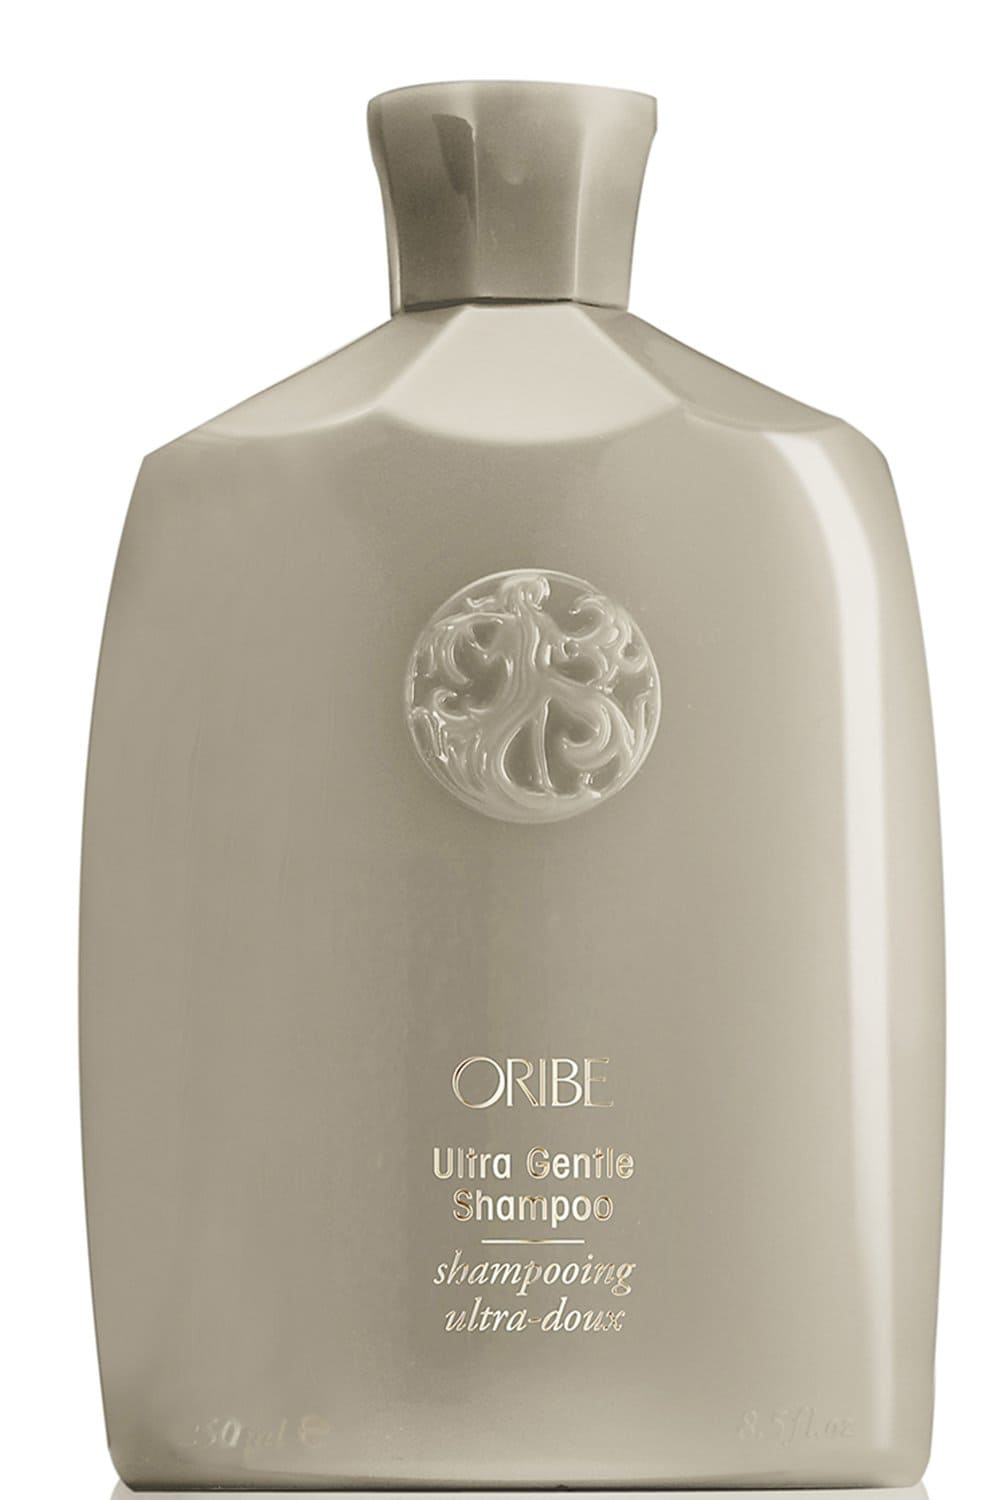 Ultra Gentle Shampoo 250ml | Oribe